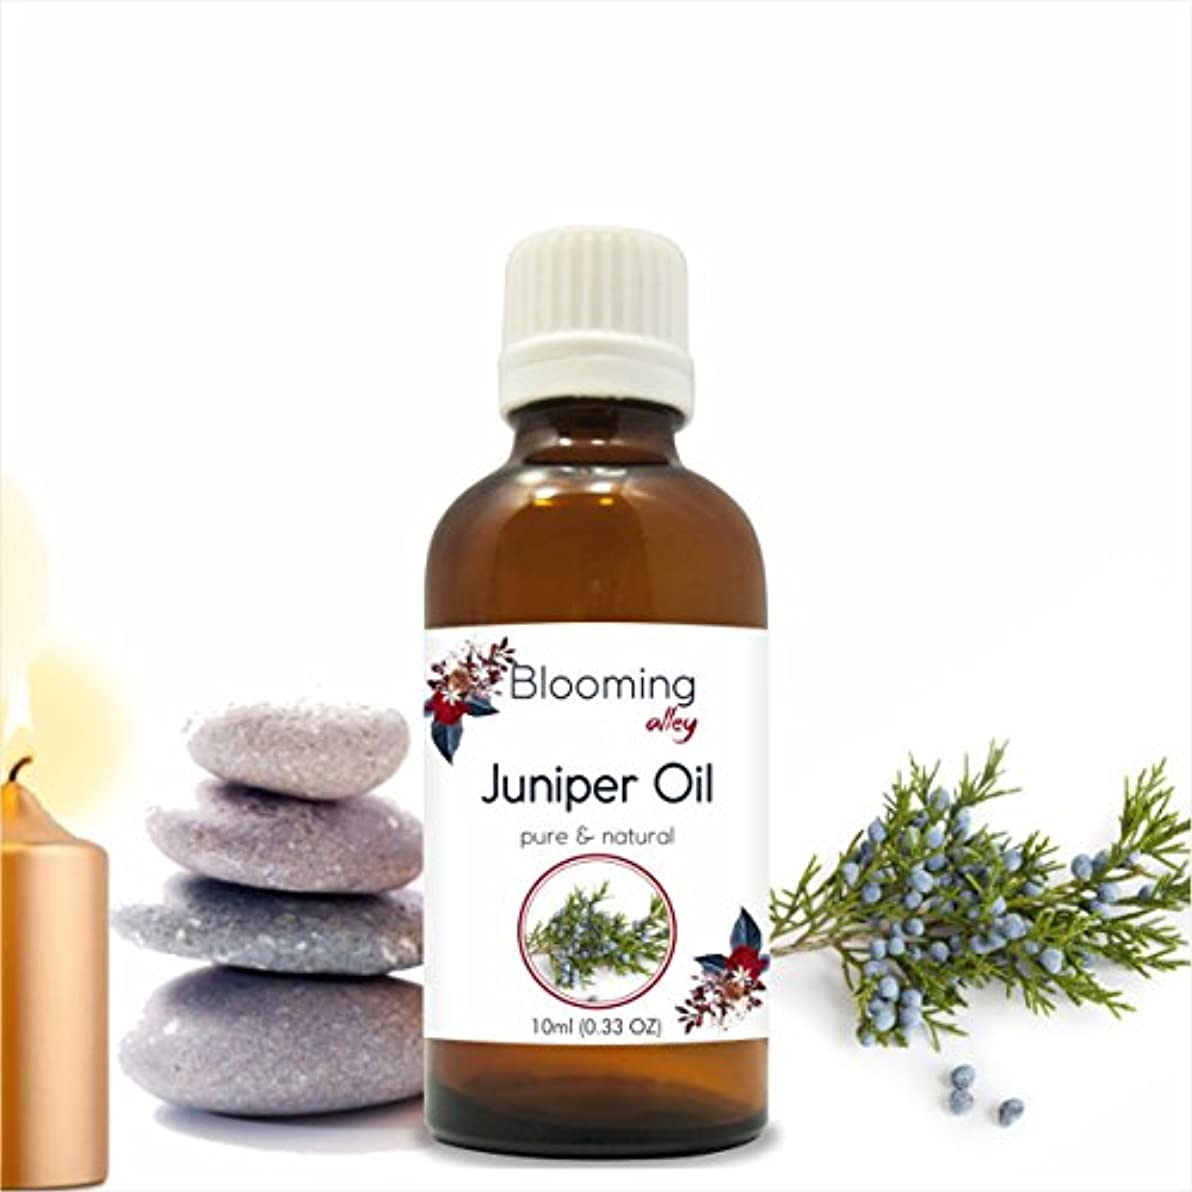 マイクロフォン宇宙太鼓腹Juniper Oil (Juniperus Communis) Essential Oil 10 ml or 0.33 Fl Oz by Blooming Alley